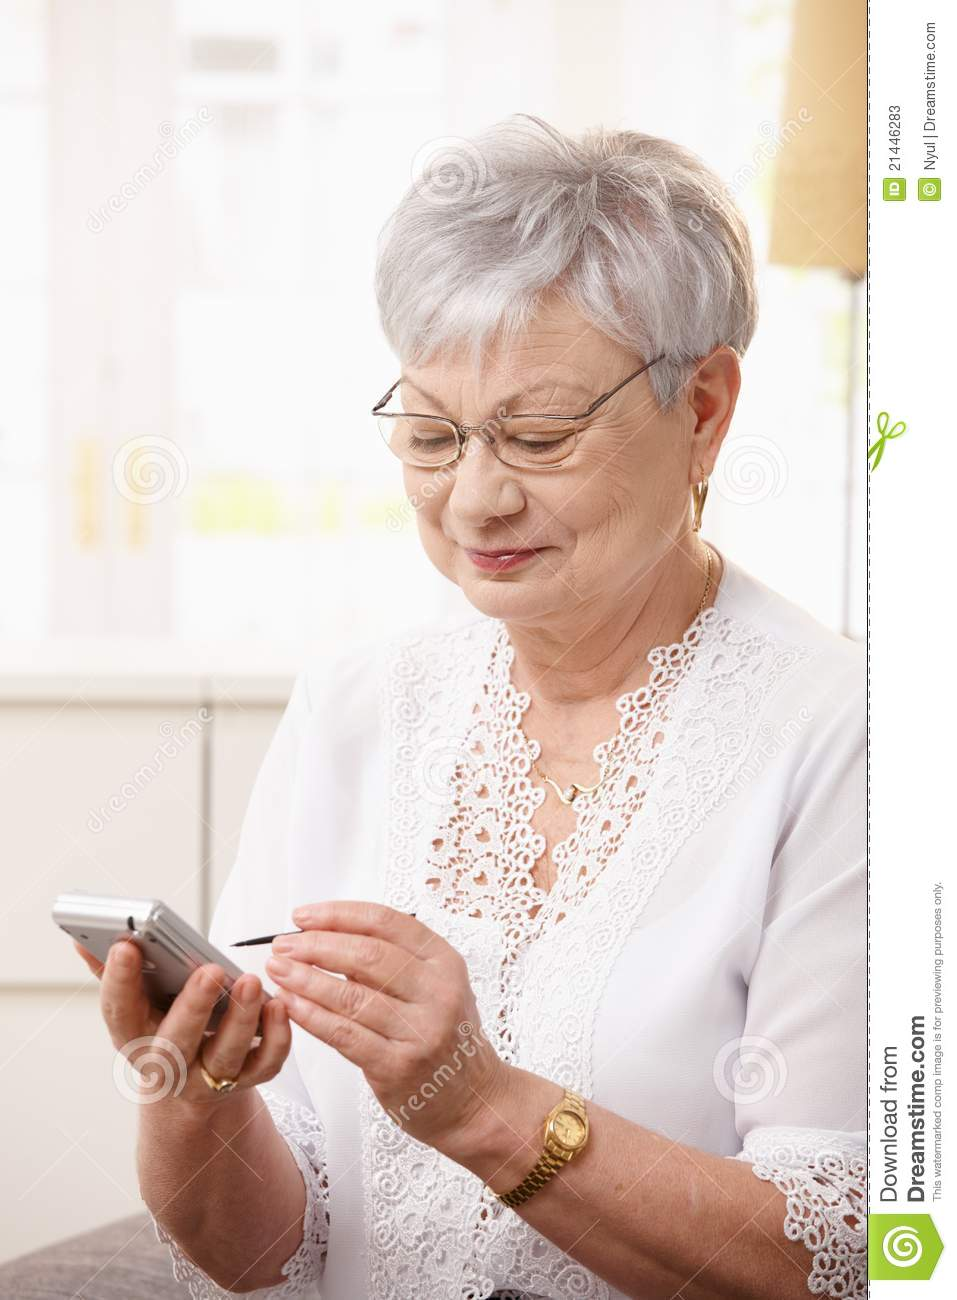 Stock Photos: Elderly lady using smartphone: www.dreamstime.com/stock-photos-elderly-lady-using-smartphone...